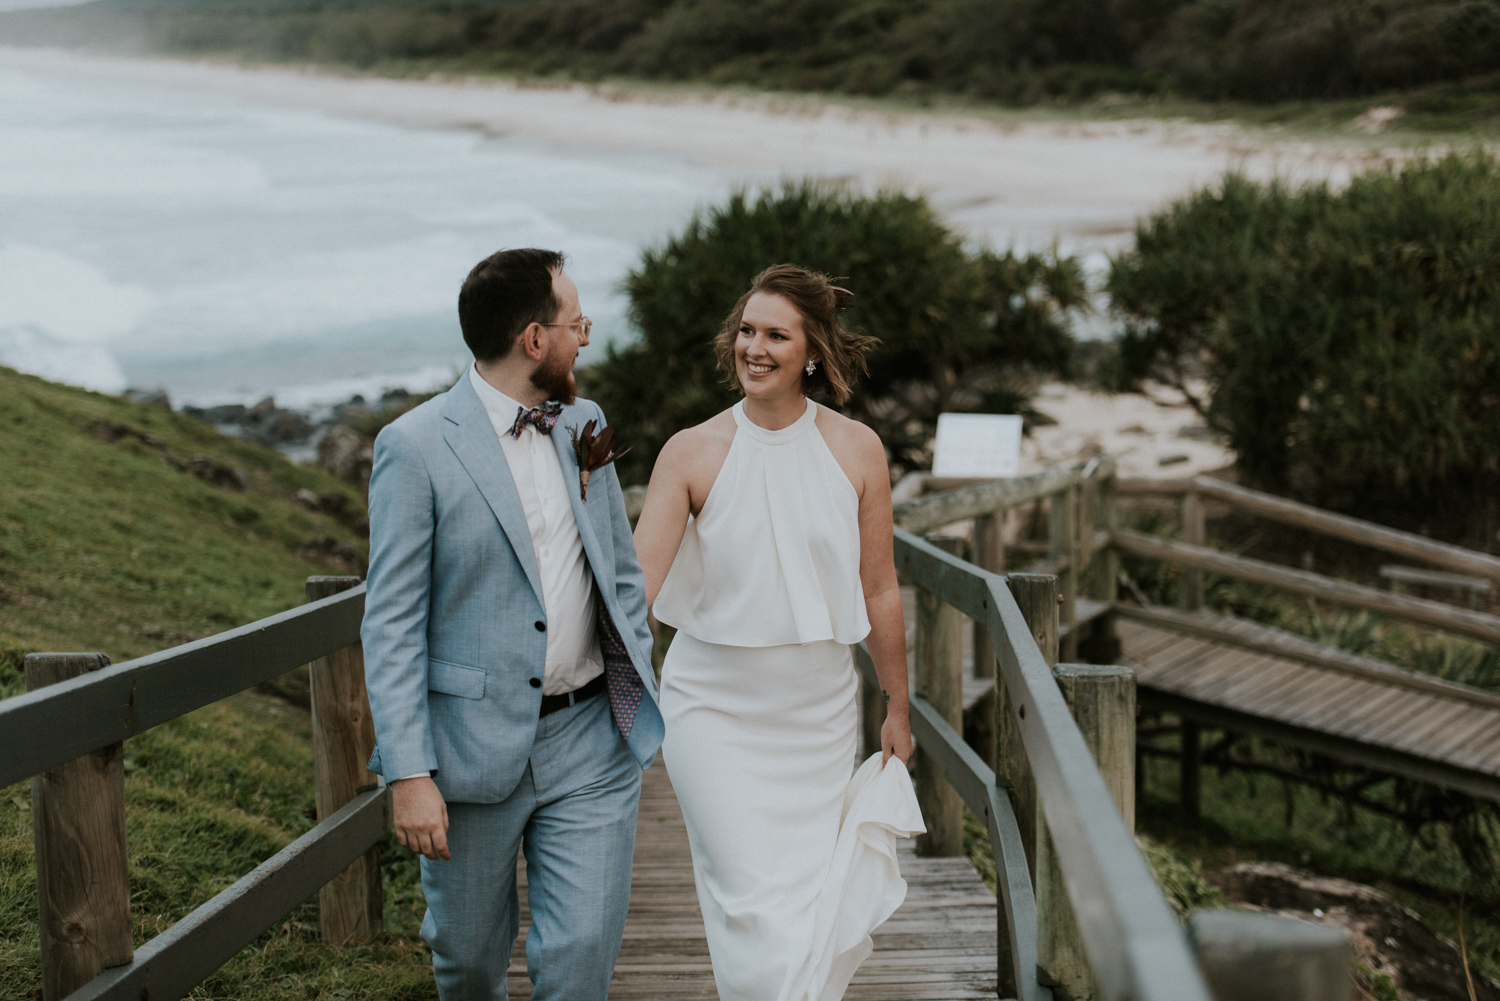 Brisbane Wedding Photographer | Tweed Coast Elopement Photography-65.jpg